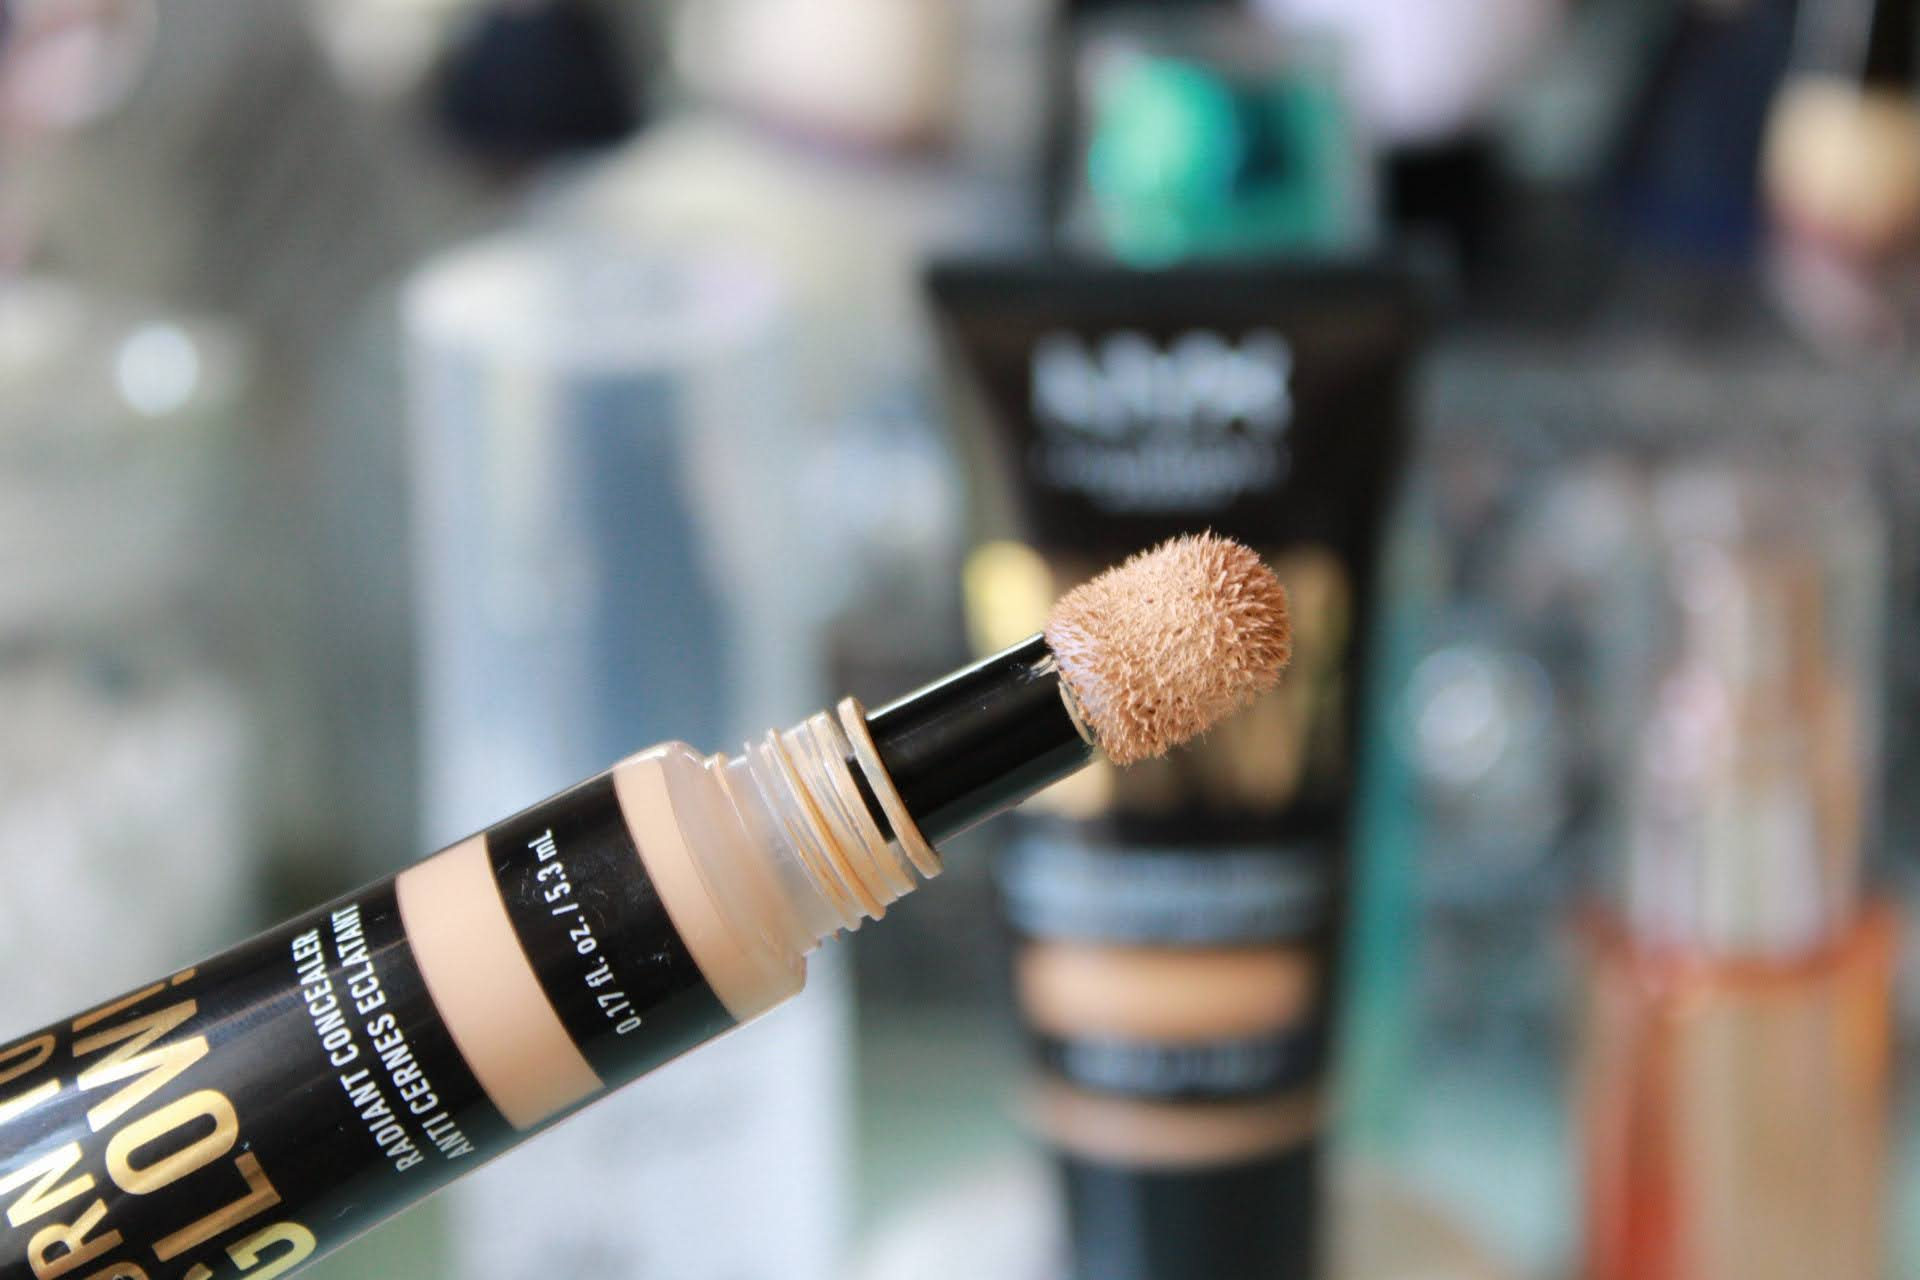 The NYX born to glow Concealer